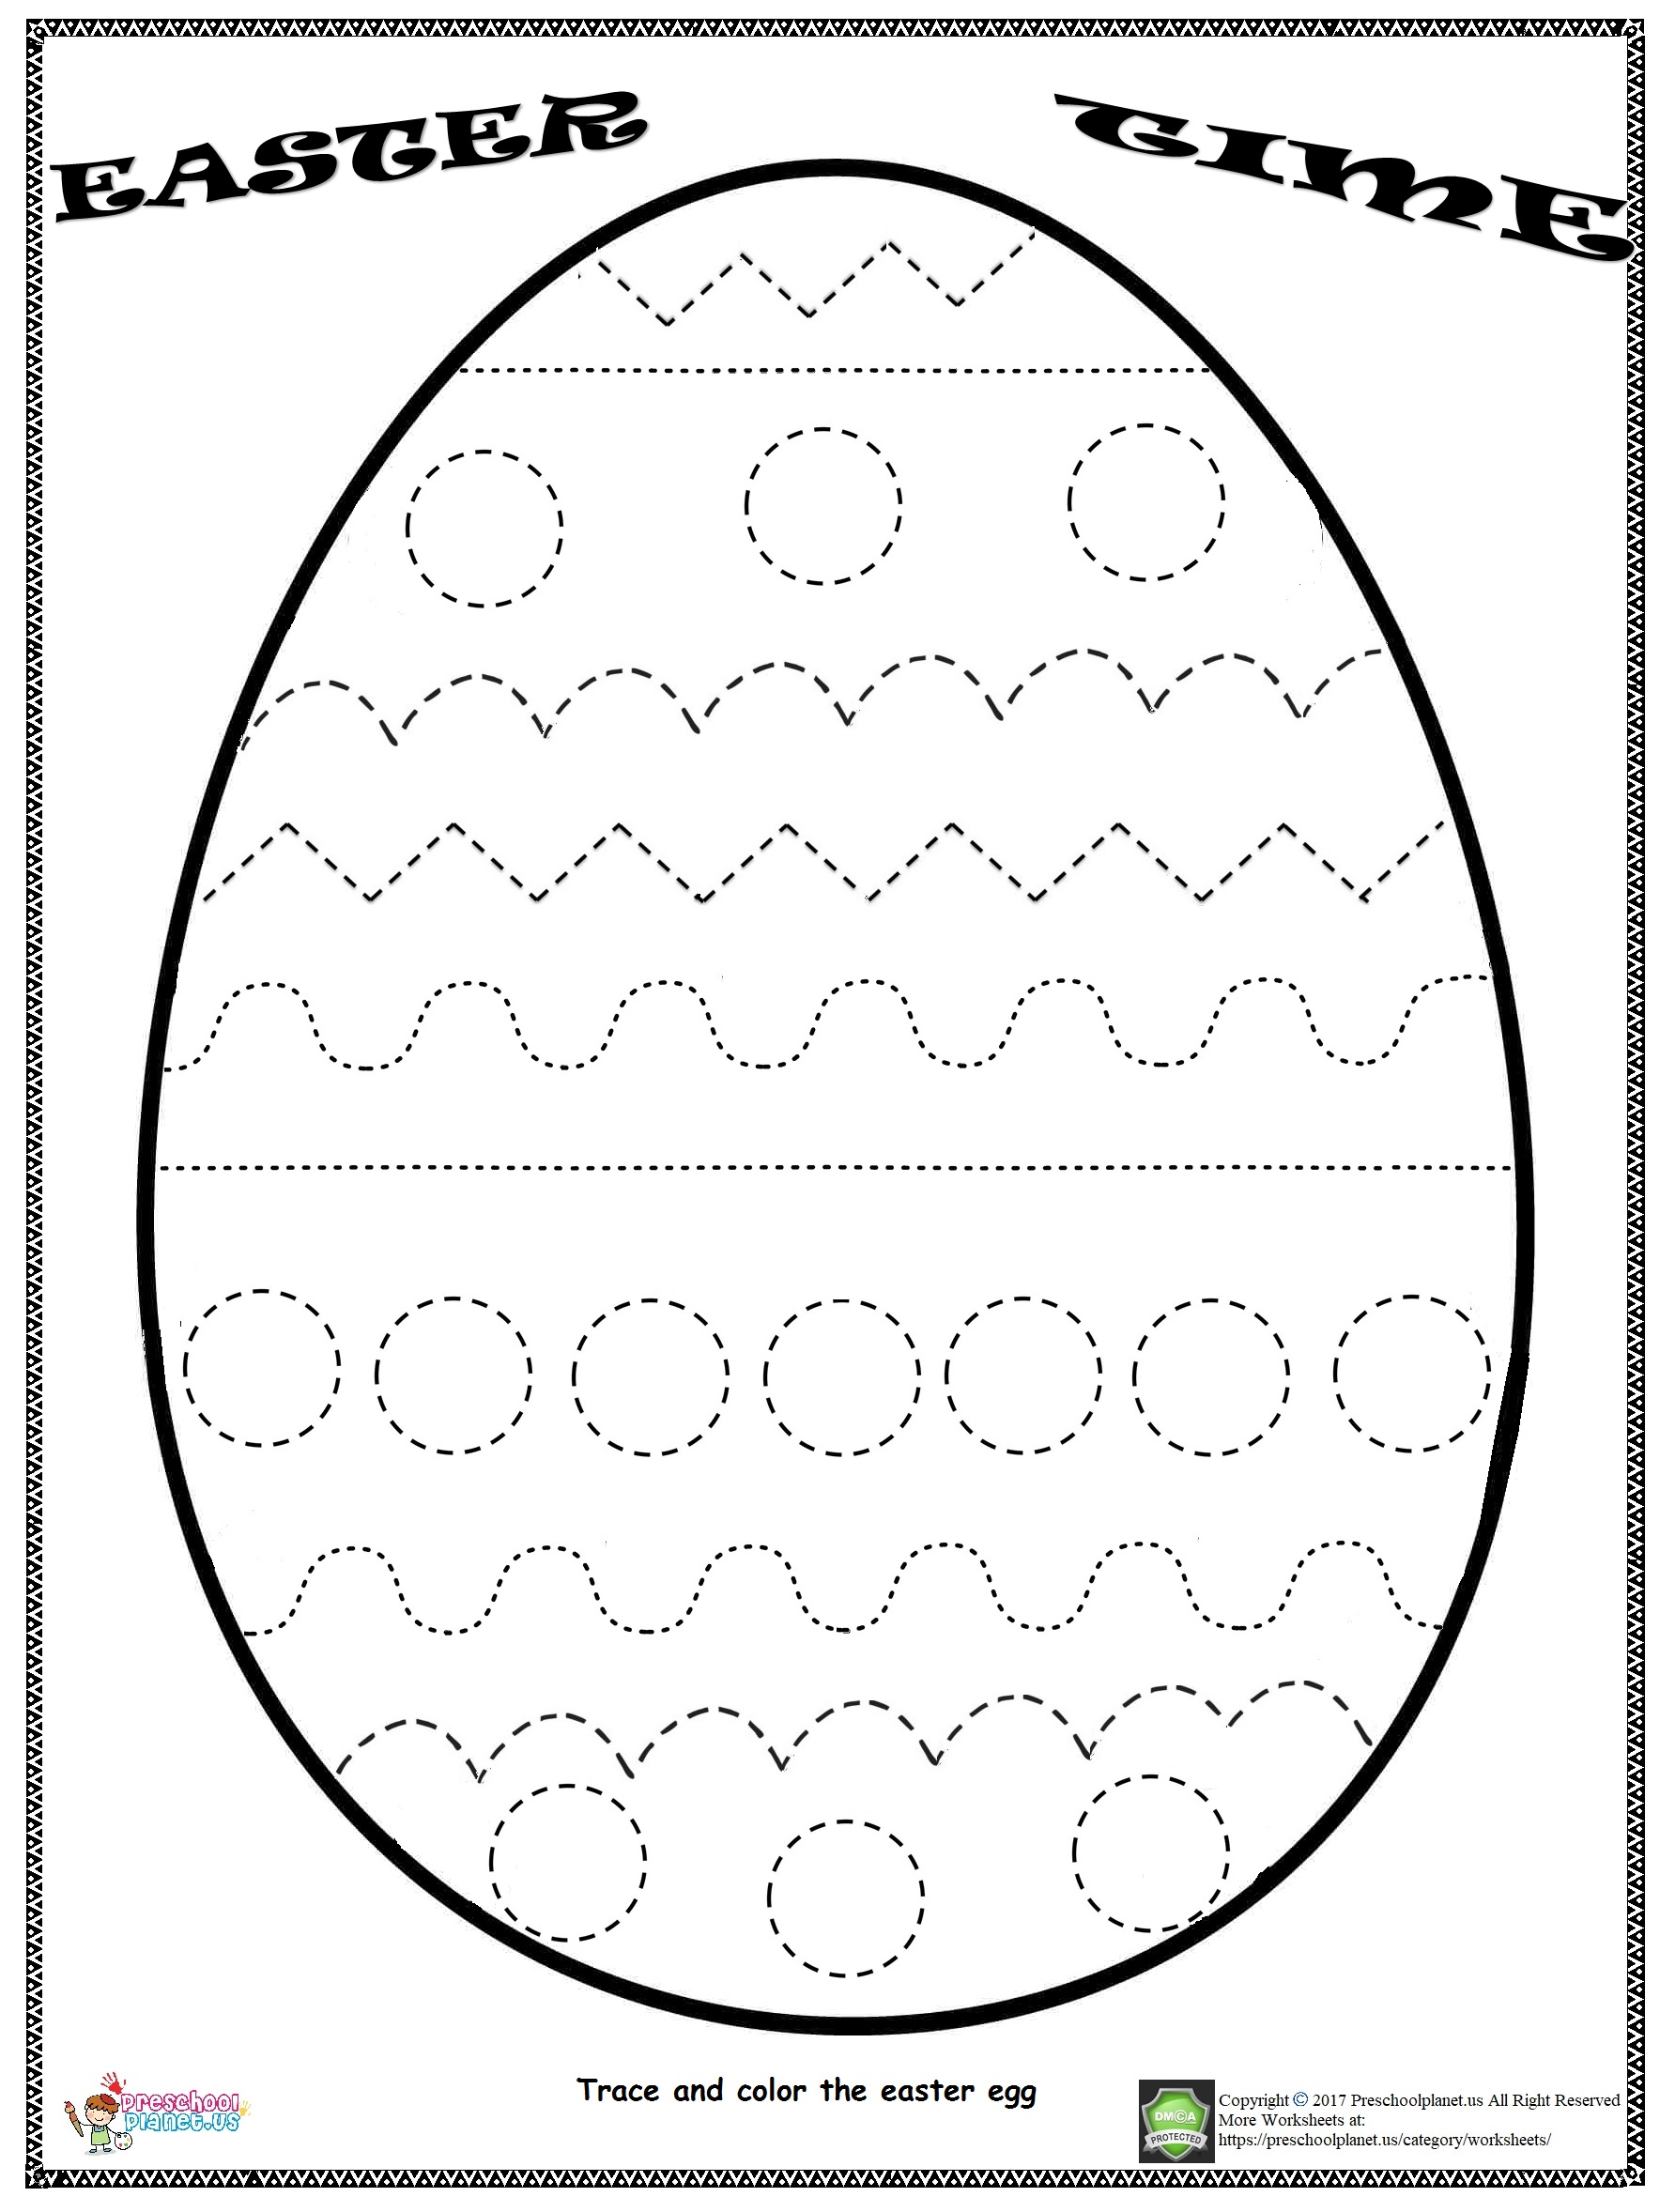 Worksheet Printable Easter Pattern